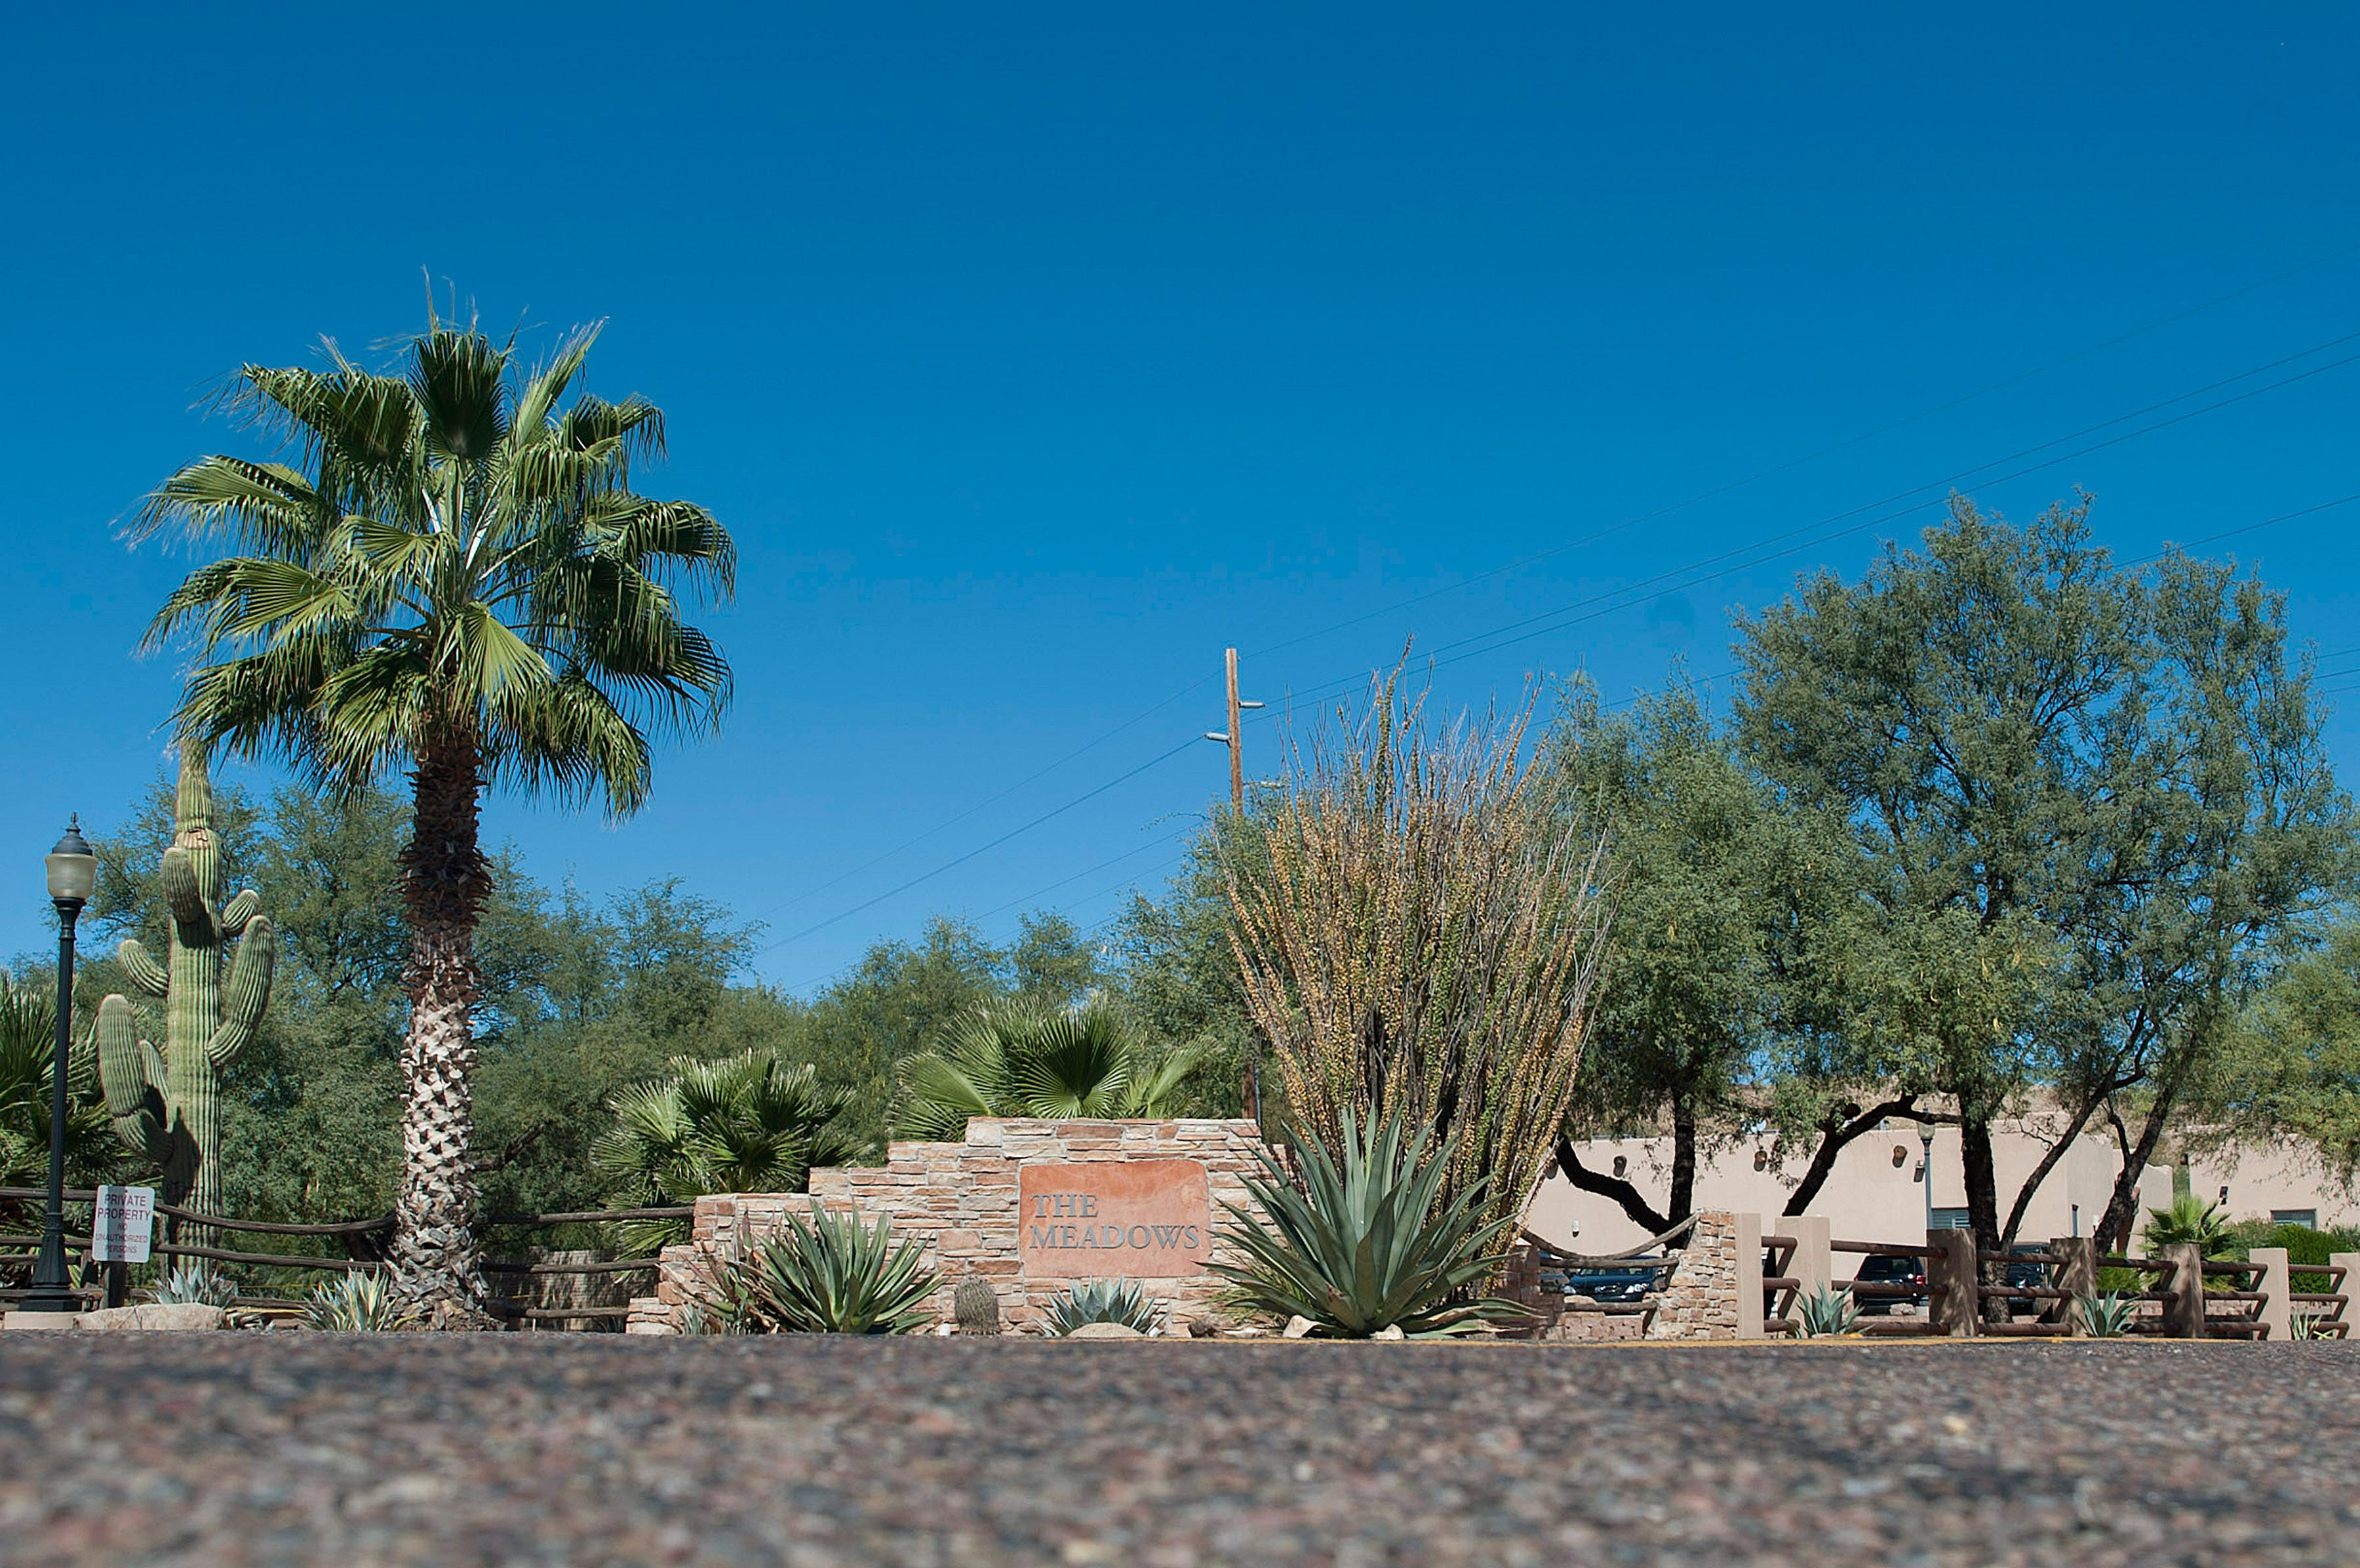 The Meadows addiction treatment center in Wickenburg is shown on Oct. 13, 2017.